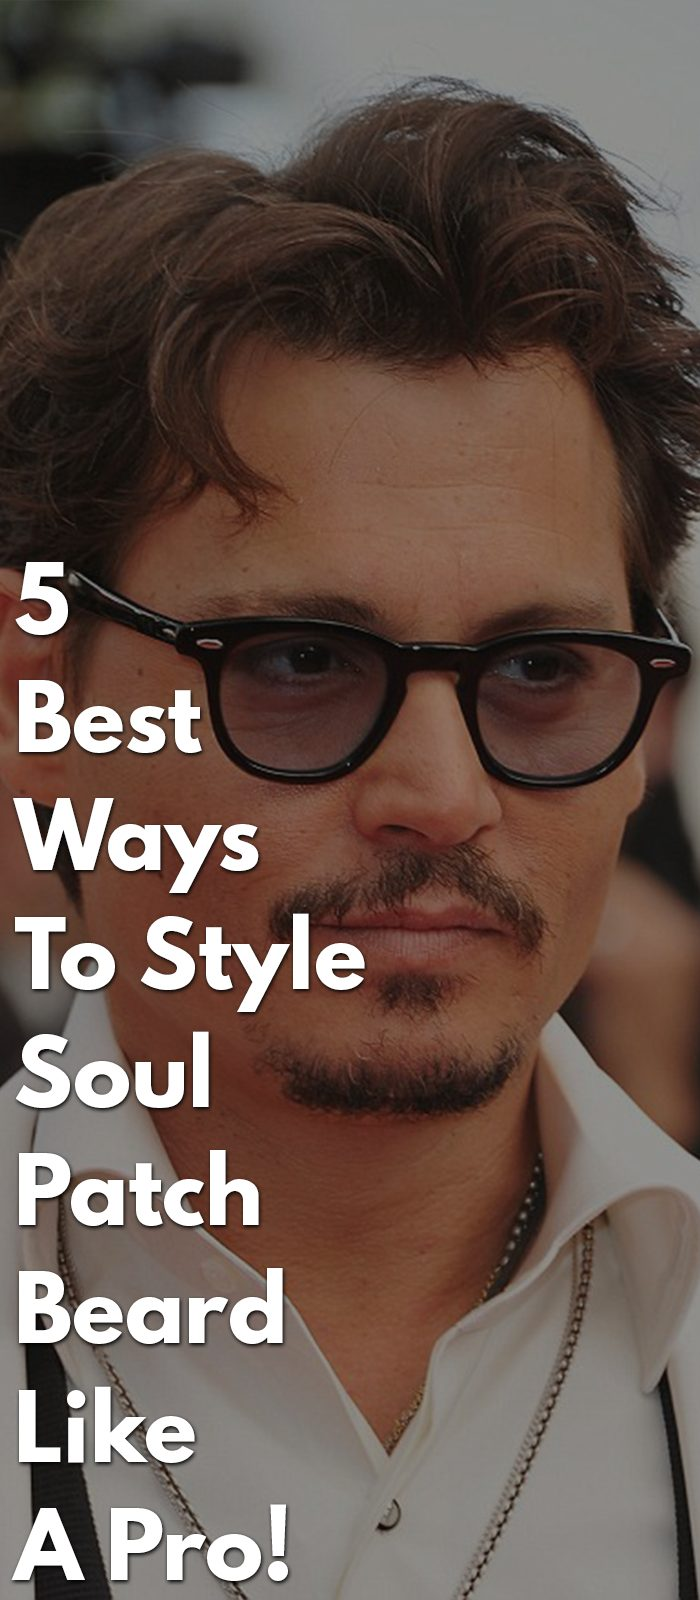 5-Best-Ways-To-Style-Soul-Patch-Beard-Like-A-Pro!.